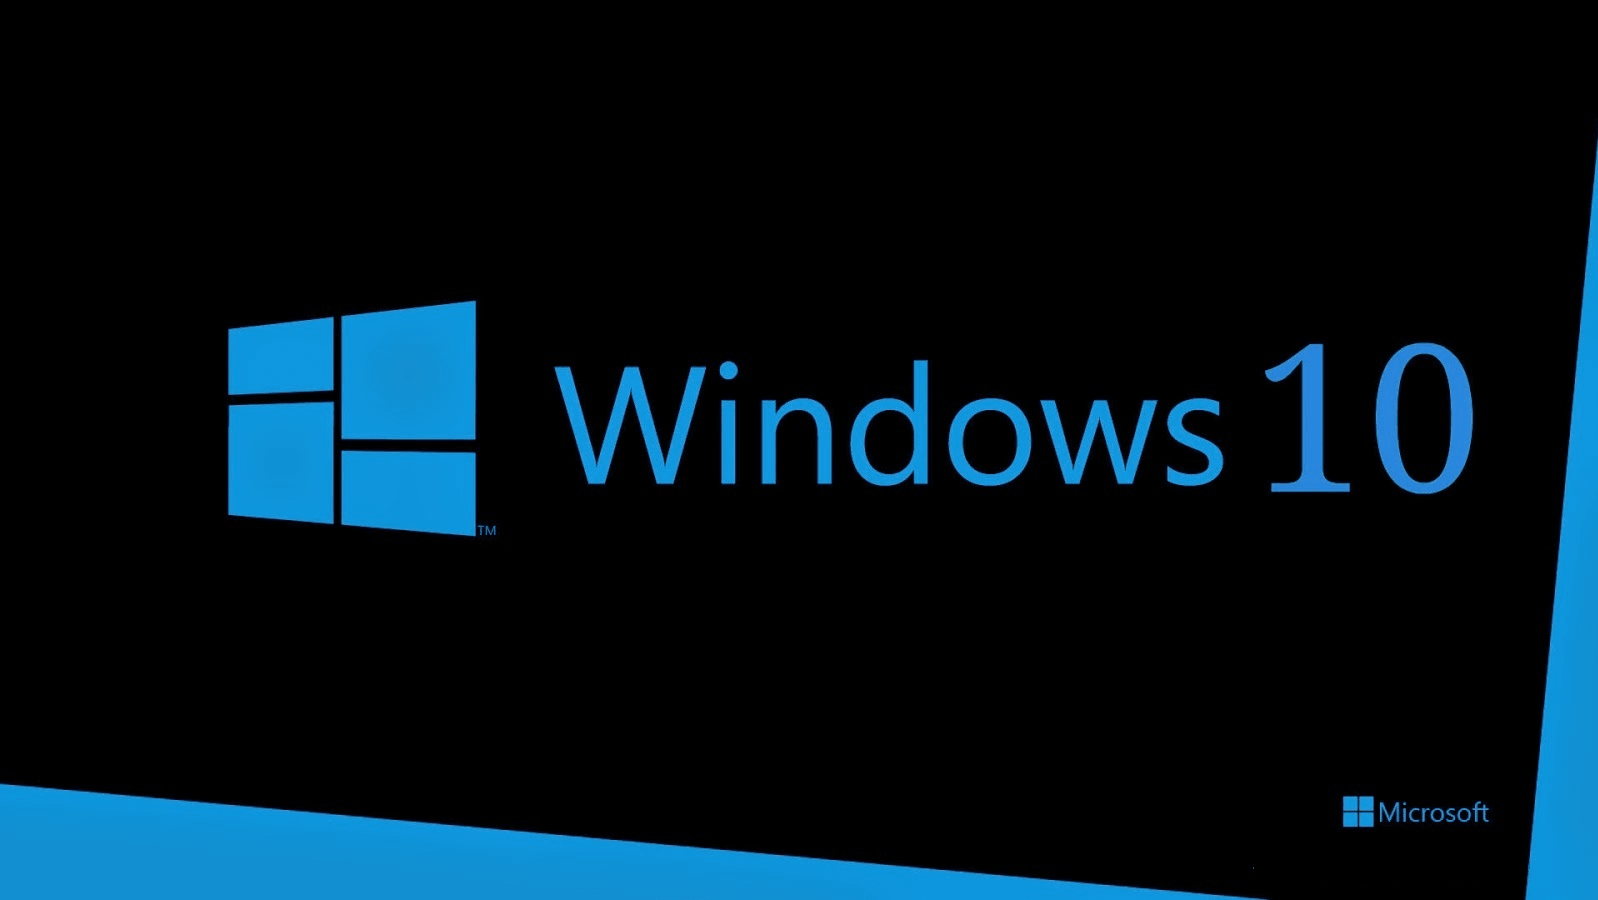 Windows10, logo, 2015